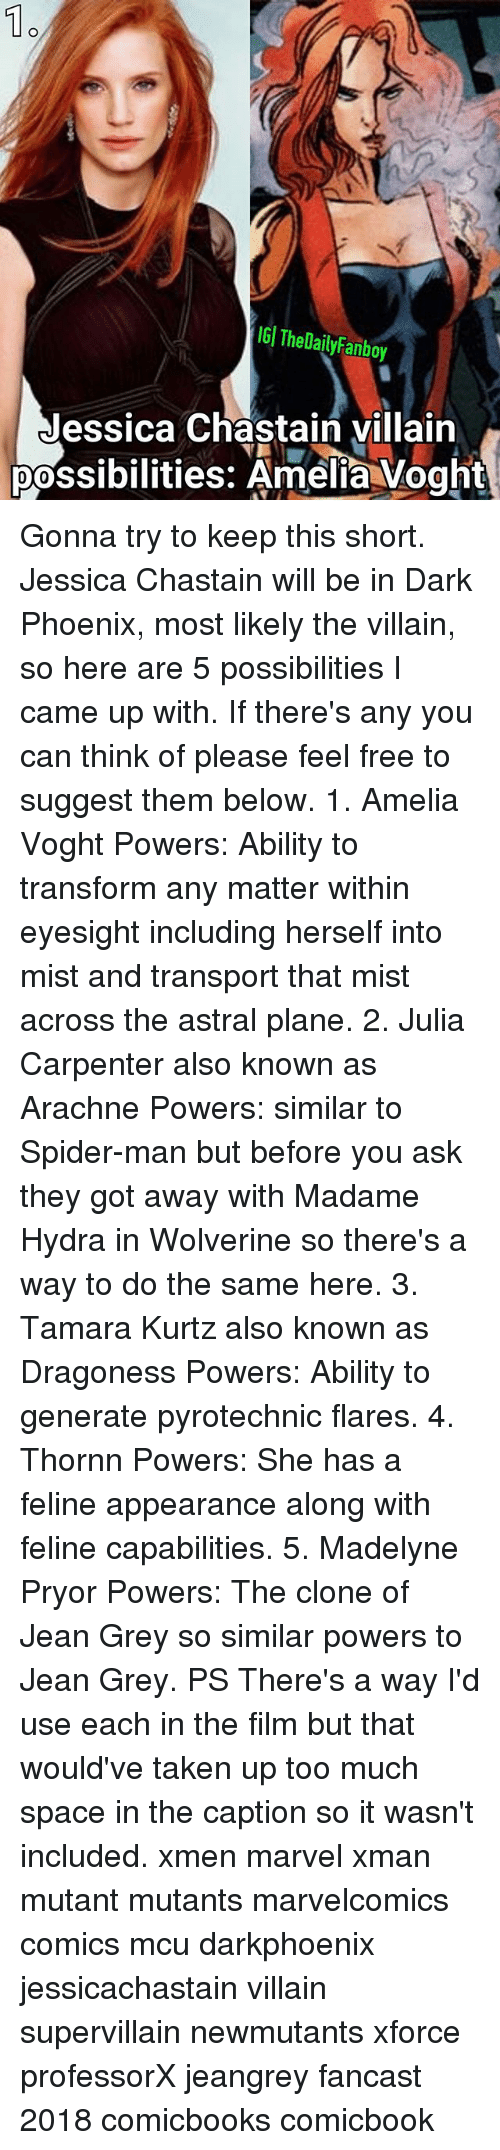 Memes, Spider, and SpiderMan: 1o  IGI TheDailyFanboy  Jessica Chastain villairn  possibilities: Amelia Voght Gonna try to keep this short. Jessica Chastain will be in Dark Phoenix, most likely the villain, so here are 5 possibilities I came up with. If there's any you can think of please feel free to suggest them below. 1. Amelia Voght Powers: Ability to transform any matter within eyesight including herself into mist and transport that mist across the astral plane. 2. Julia Carpenter also known as Arachne Powers: similar to Spider-man but before you ask they got away with Madame Hydra in Wolverine so there's a way to do the same here. 3. Tamara Kurtz also known as Dragoness Powers: Ability to generate pyrotechnic flares. 4. Thornn Powers: She has a feline appearance along with feline capabilities. 5. Madelyne Pryor Powers: The clone of Jean Grey so similar powers to Jean Grey. PS There's a way I'd use each in the film but that would've taken up too much space in the caption so it wasn't included. xmen marvel xman mutant mutants marvelcomics comics mcu darkphoenix jessicachastain villain supervillain newmutants xforce professorX jeangrey fancast 2018 comicbooks comicbook